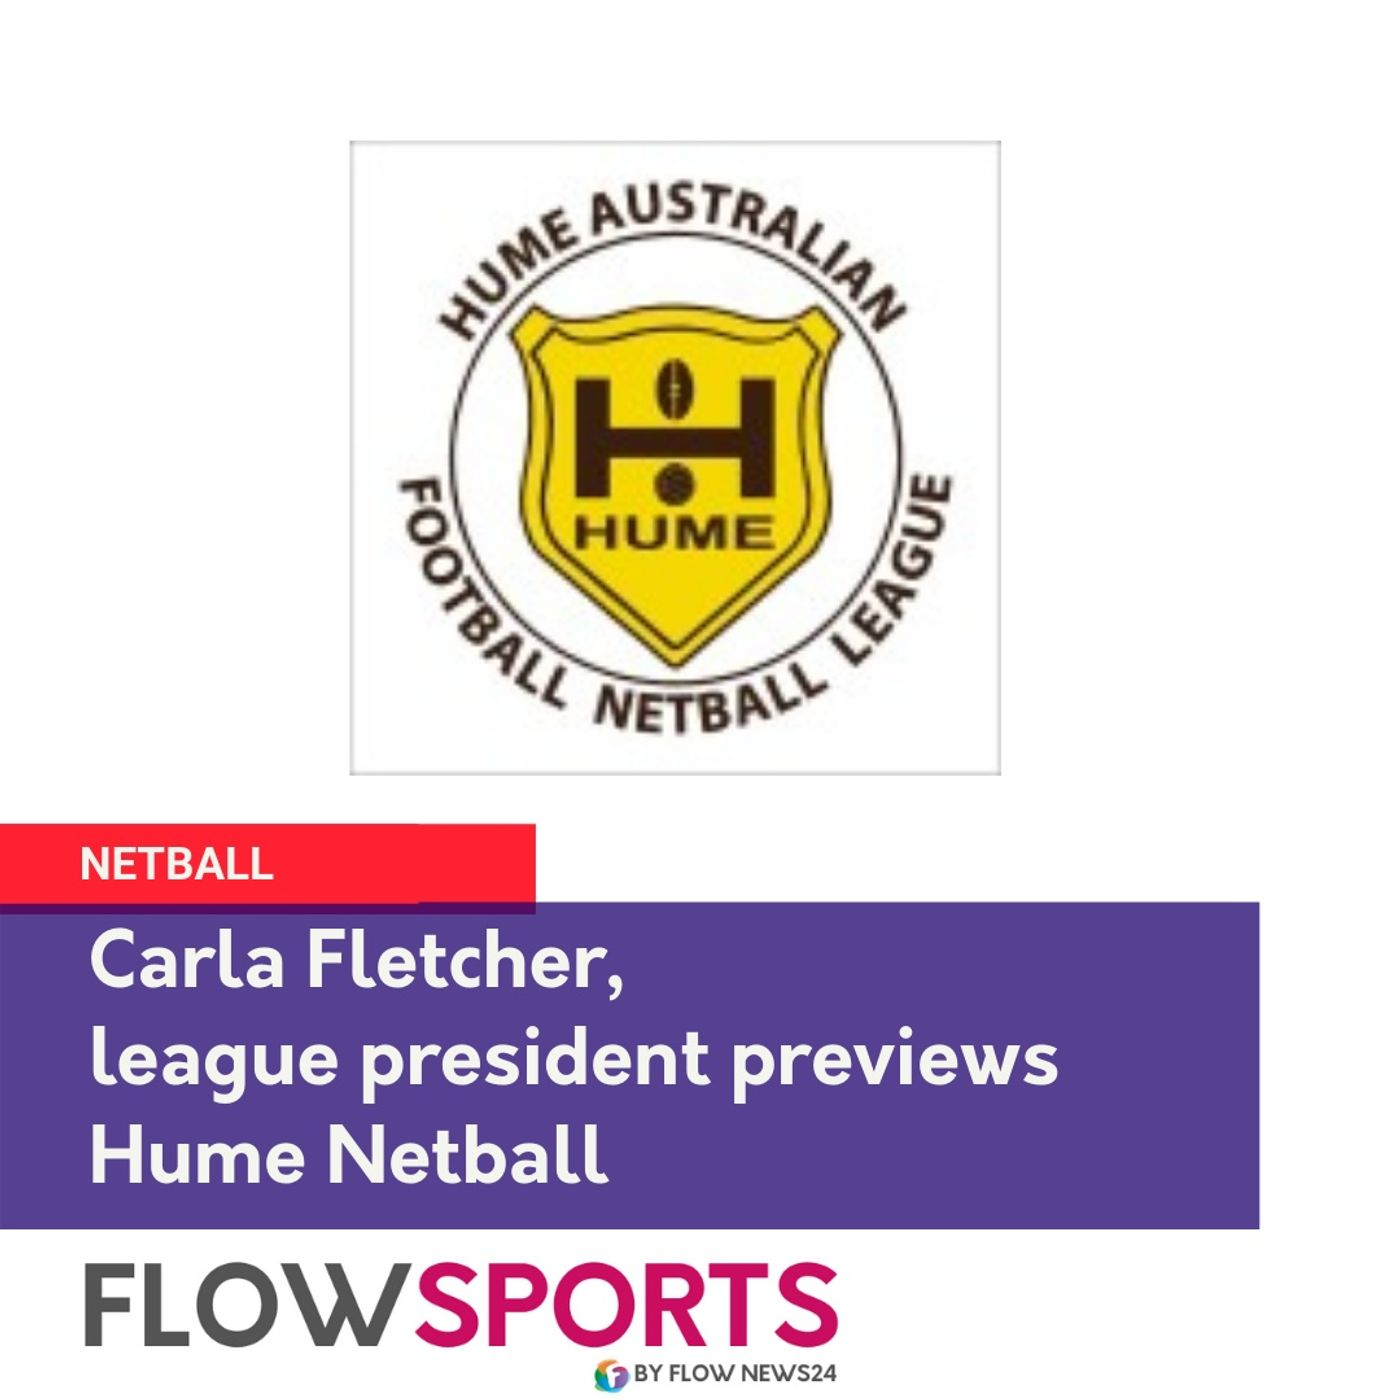 Carla Fletcher on Hume Netball round 9 proceeding this weekend in @NSWNetball